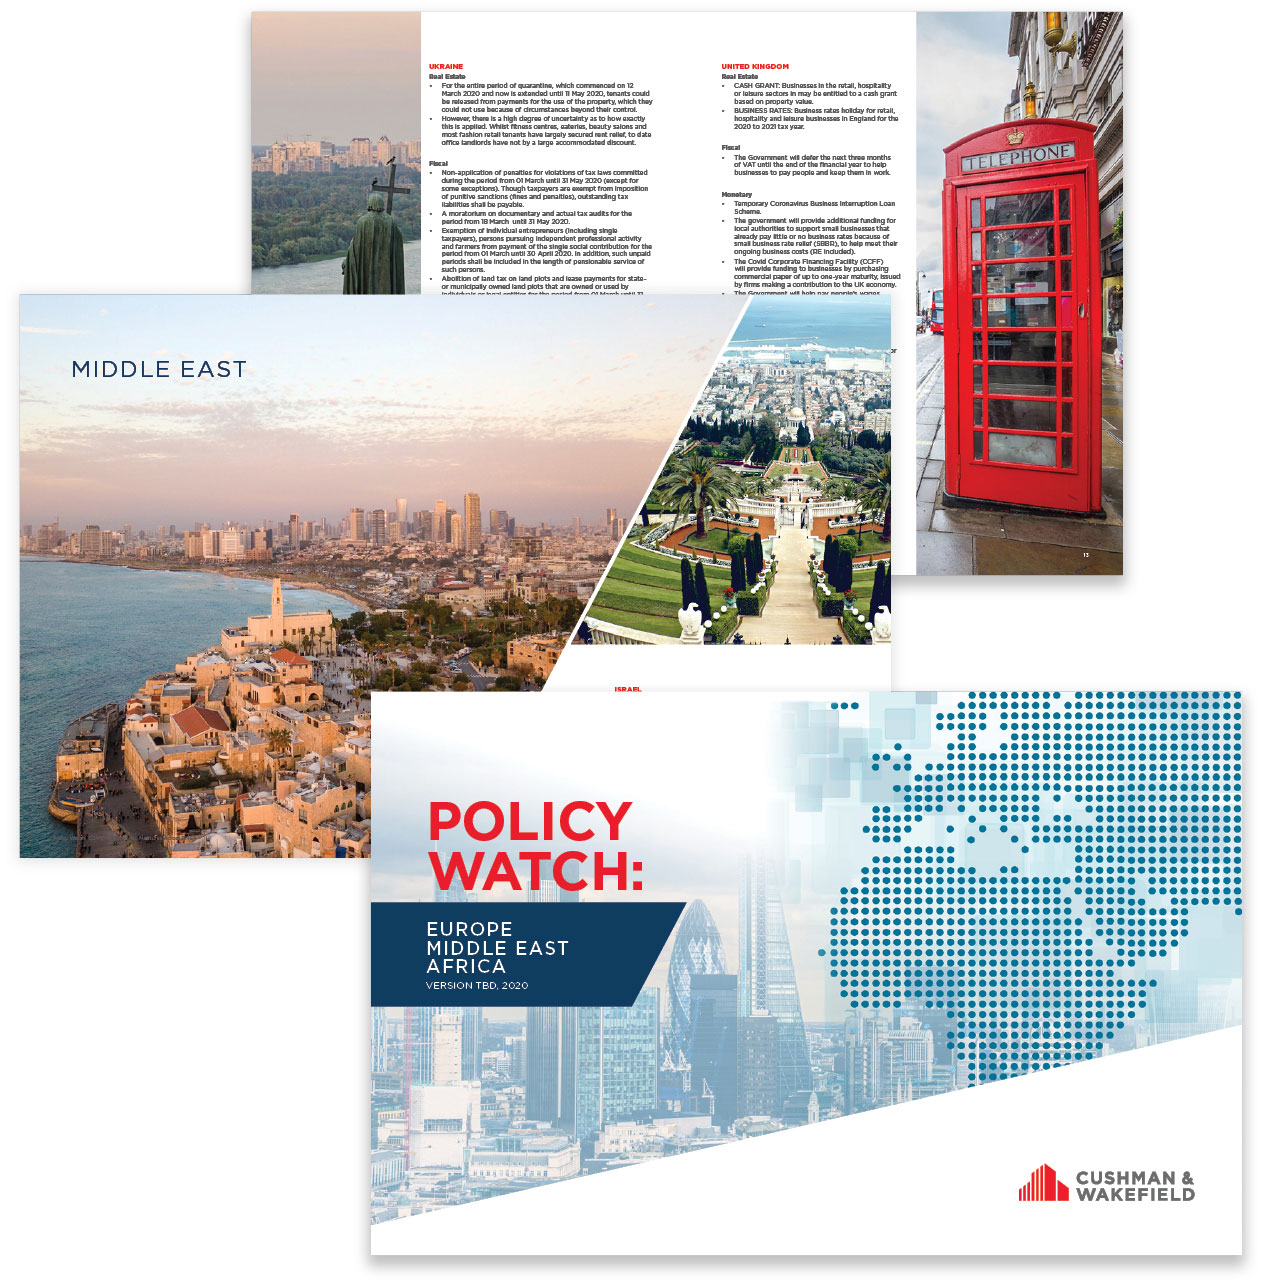 EMEA Policy Watch (image)